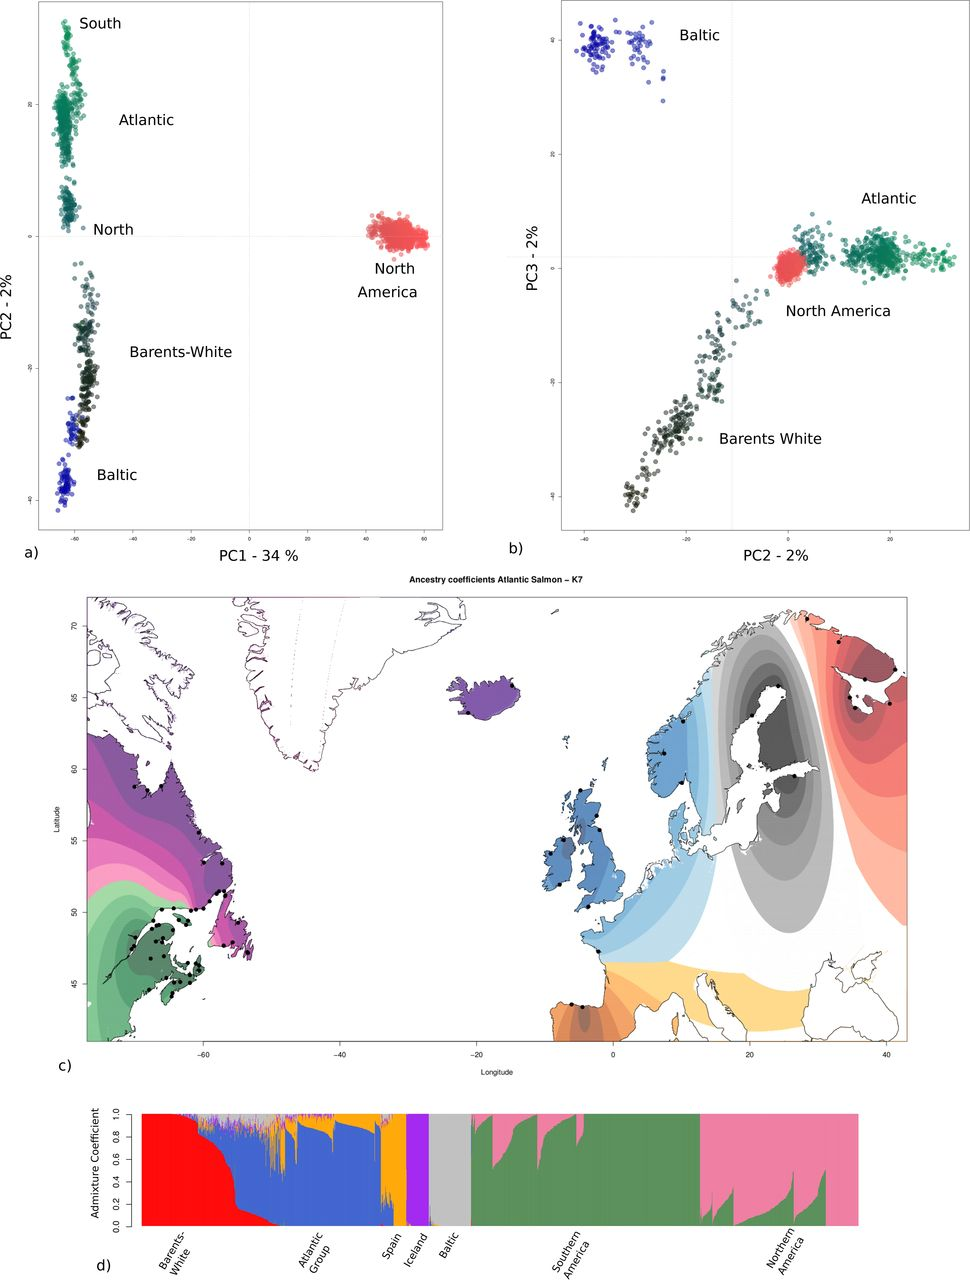 Reconstructing The Demographic History Of Atlantic Salmon Salmo Salar Across Its Distribution Range Using Approximate Bayesian Computations Biorxiv